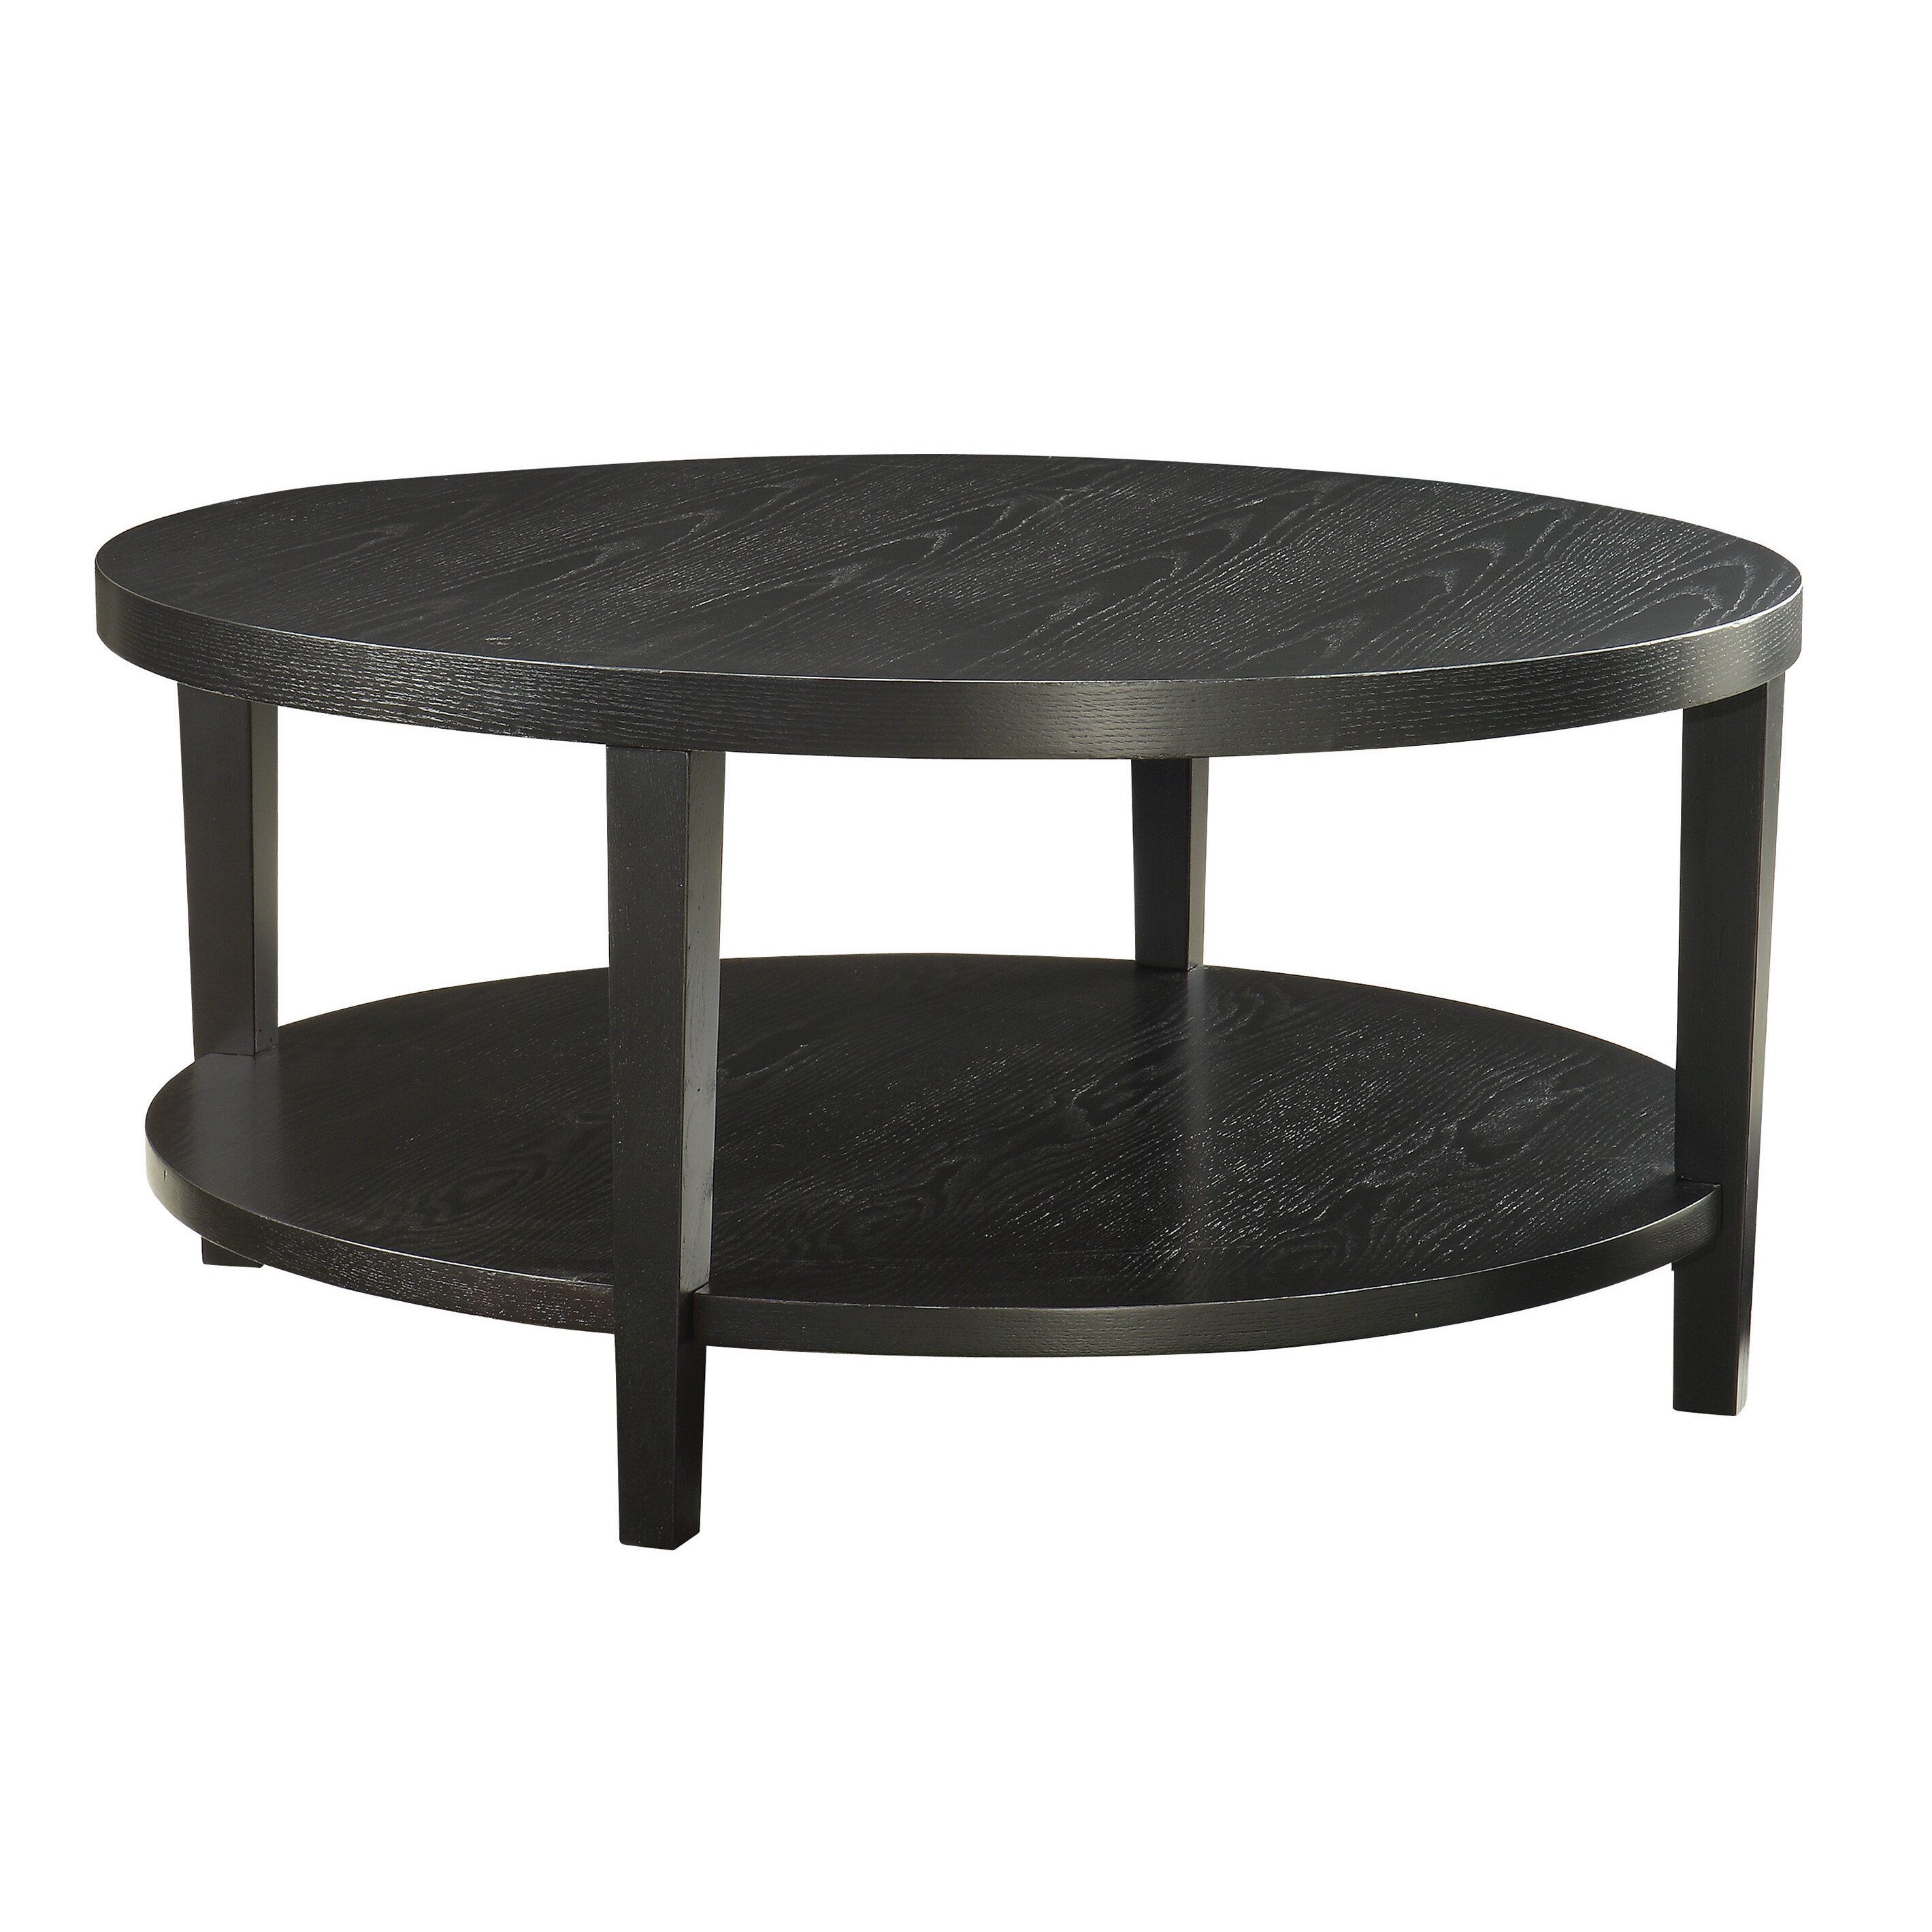 Brayden studio fabiano round coffee table reviews wayfair for Wayfair round glass coffee table